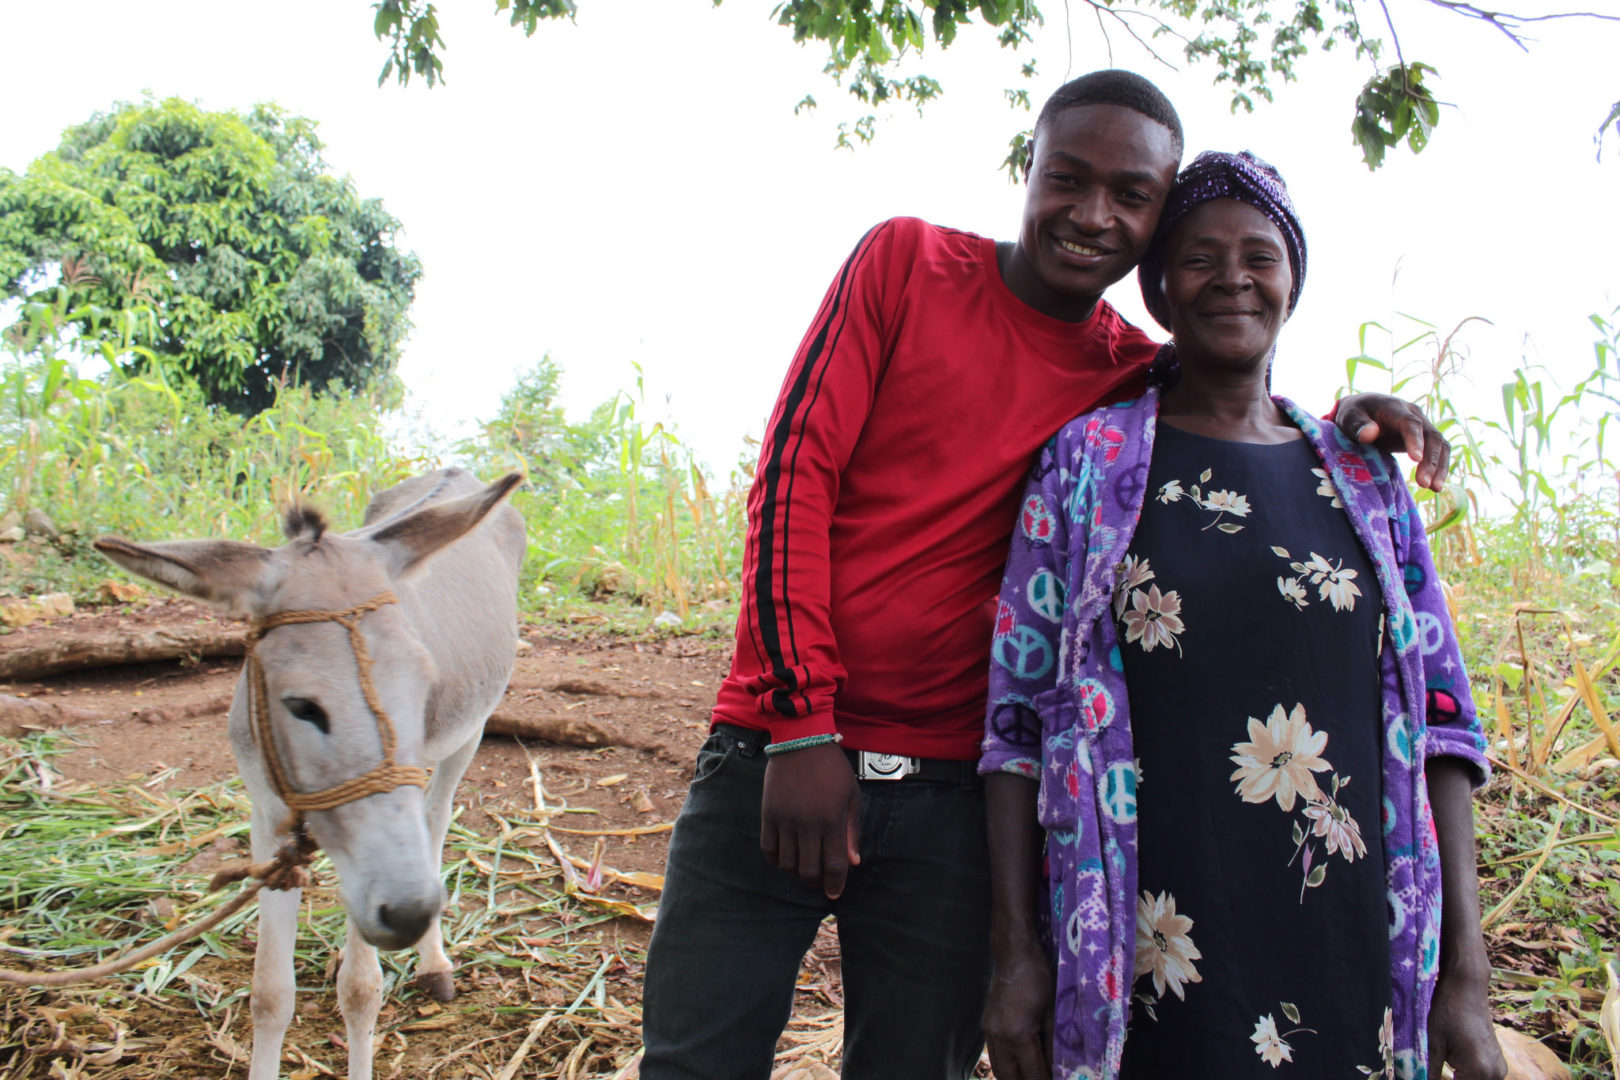 Dieula was able to put her son through school as a result of economic empowerment.